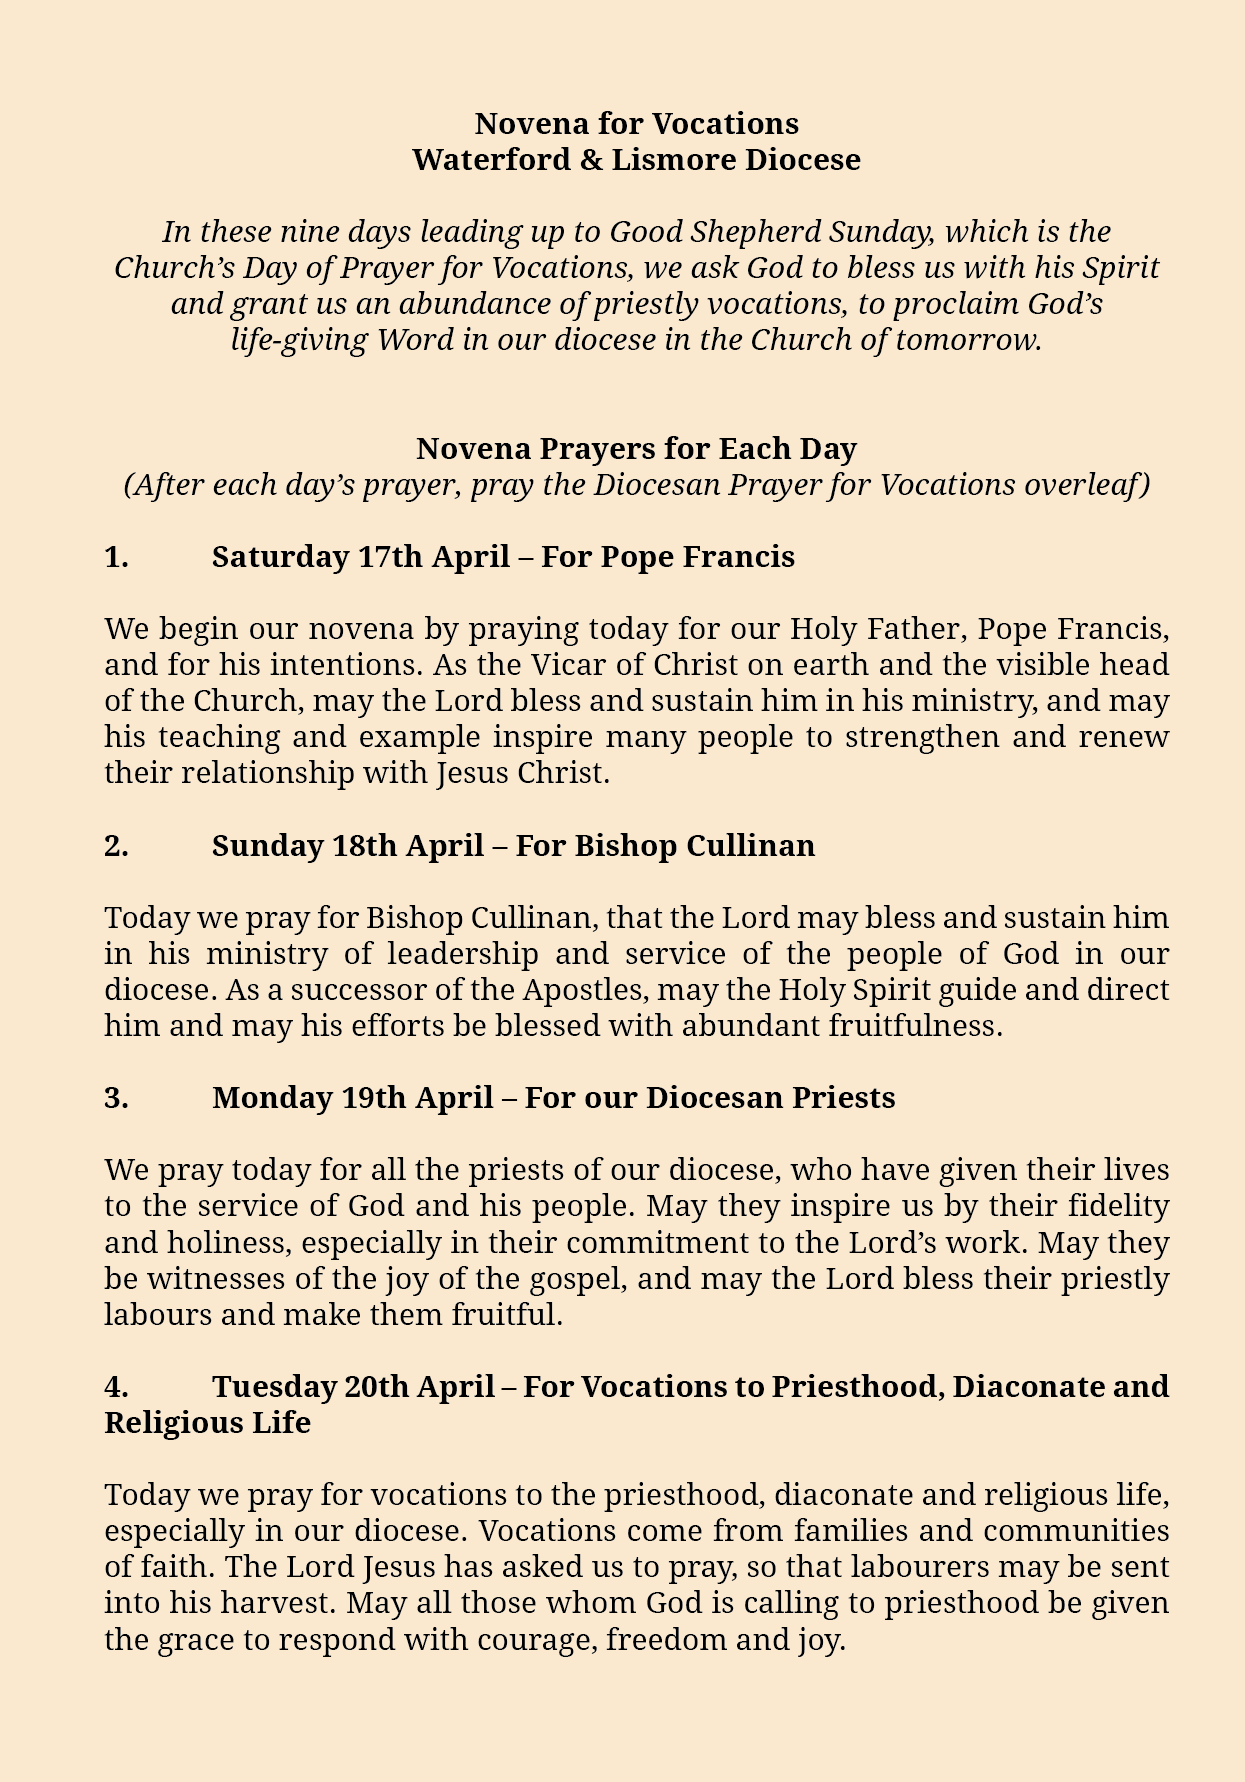 novena for vocations waterford lismore